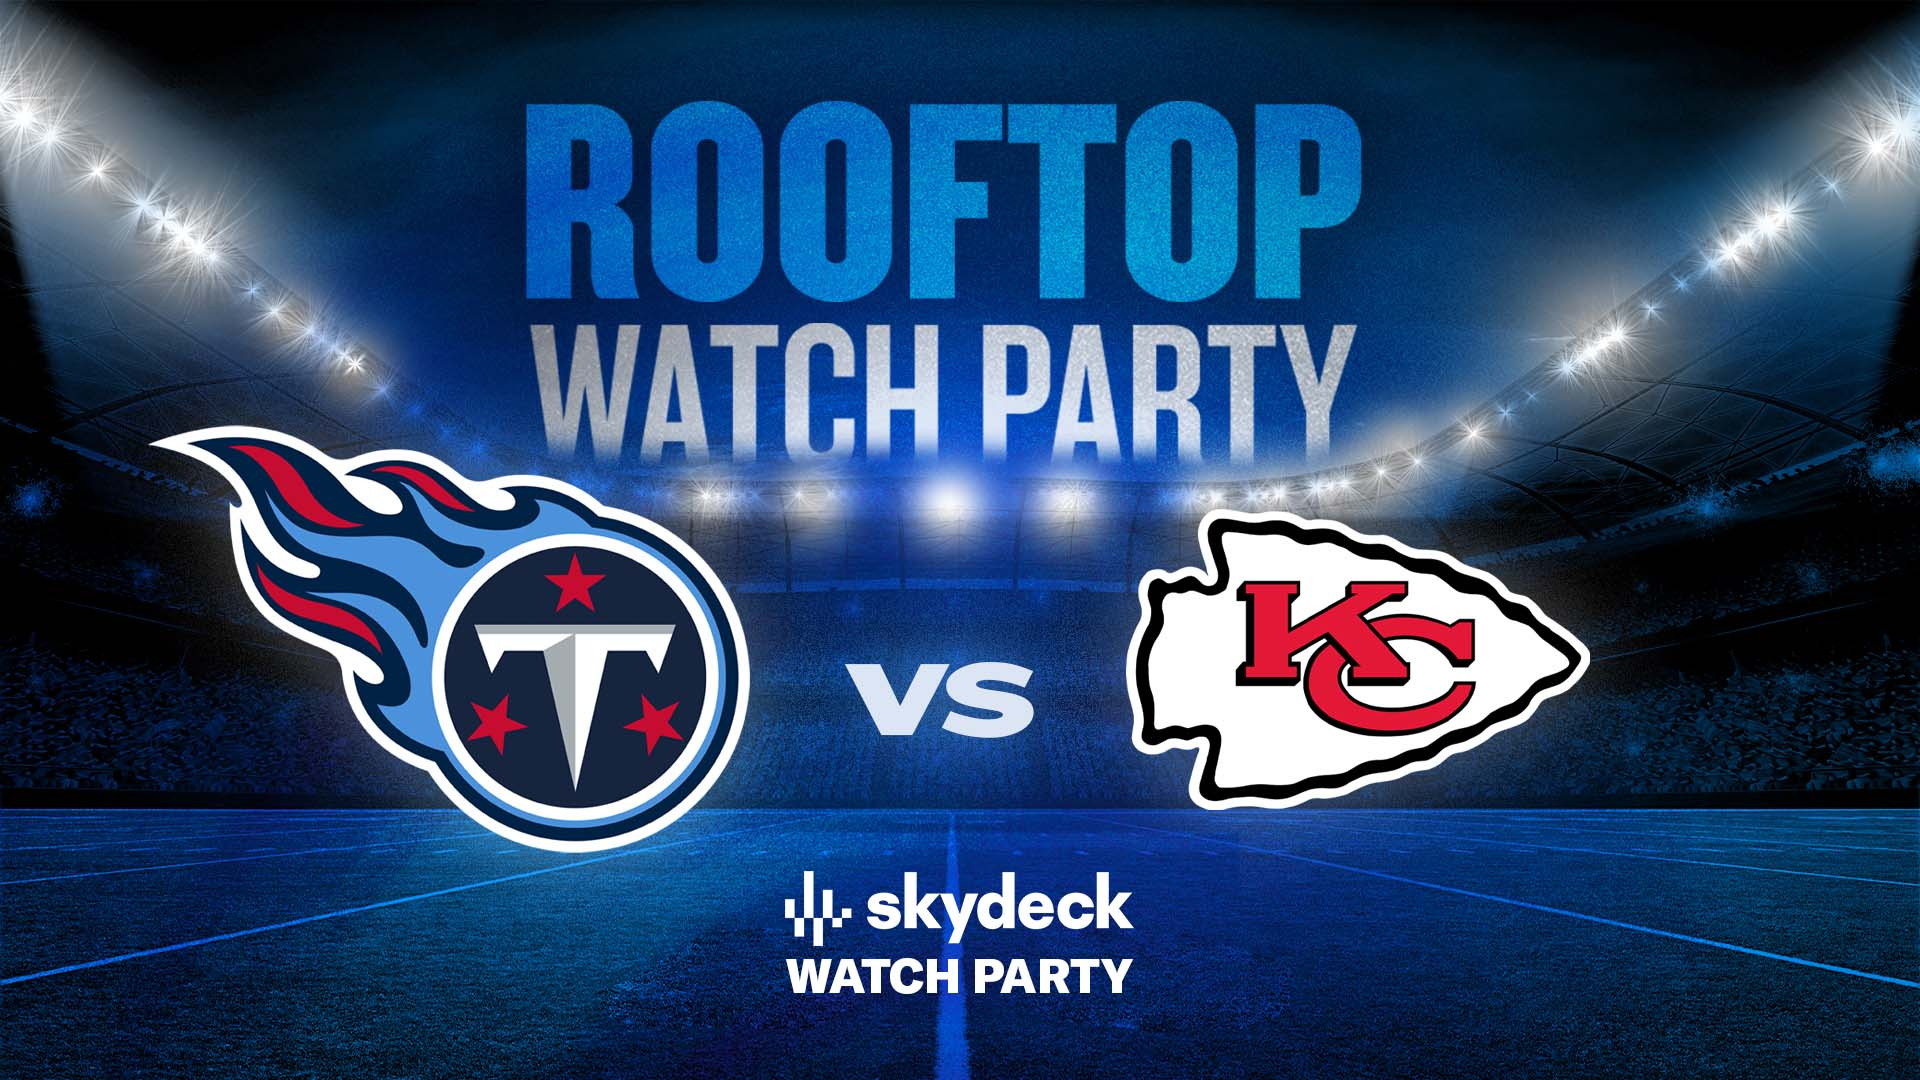 Titans vs. Chiefs Skydeck Watch Party - hero